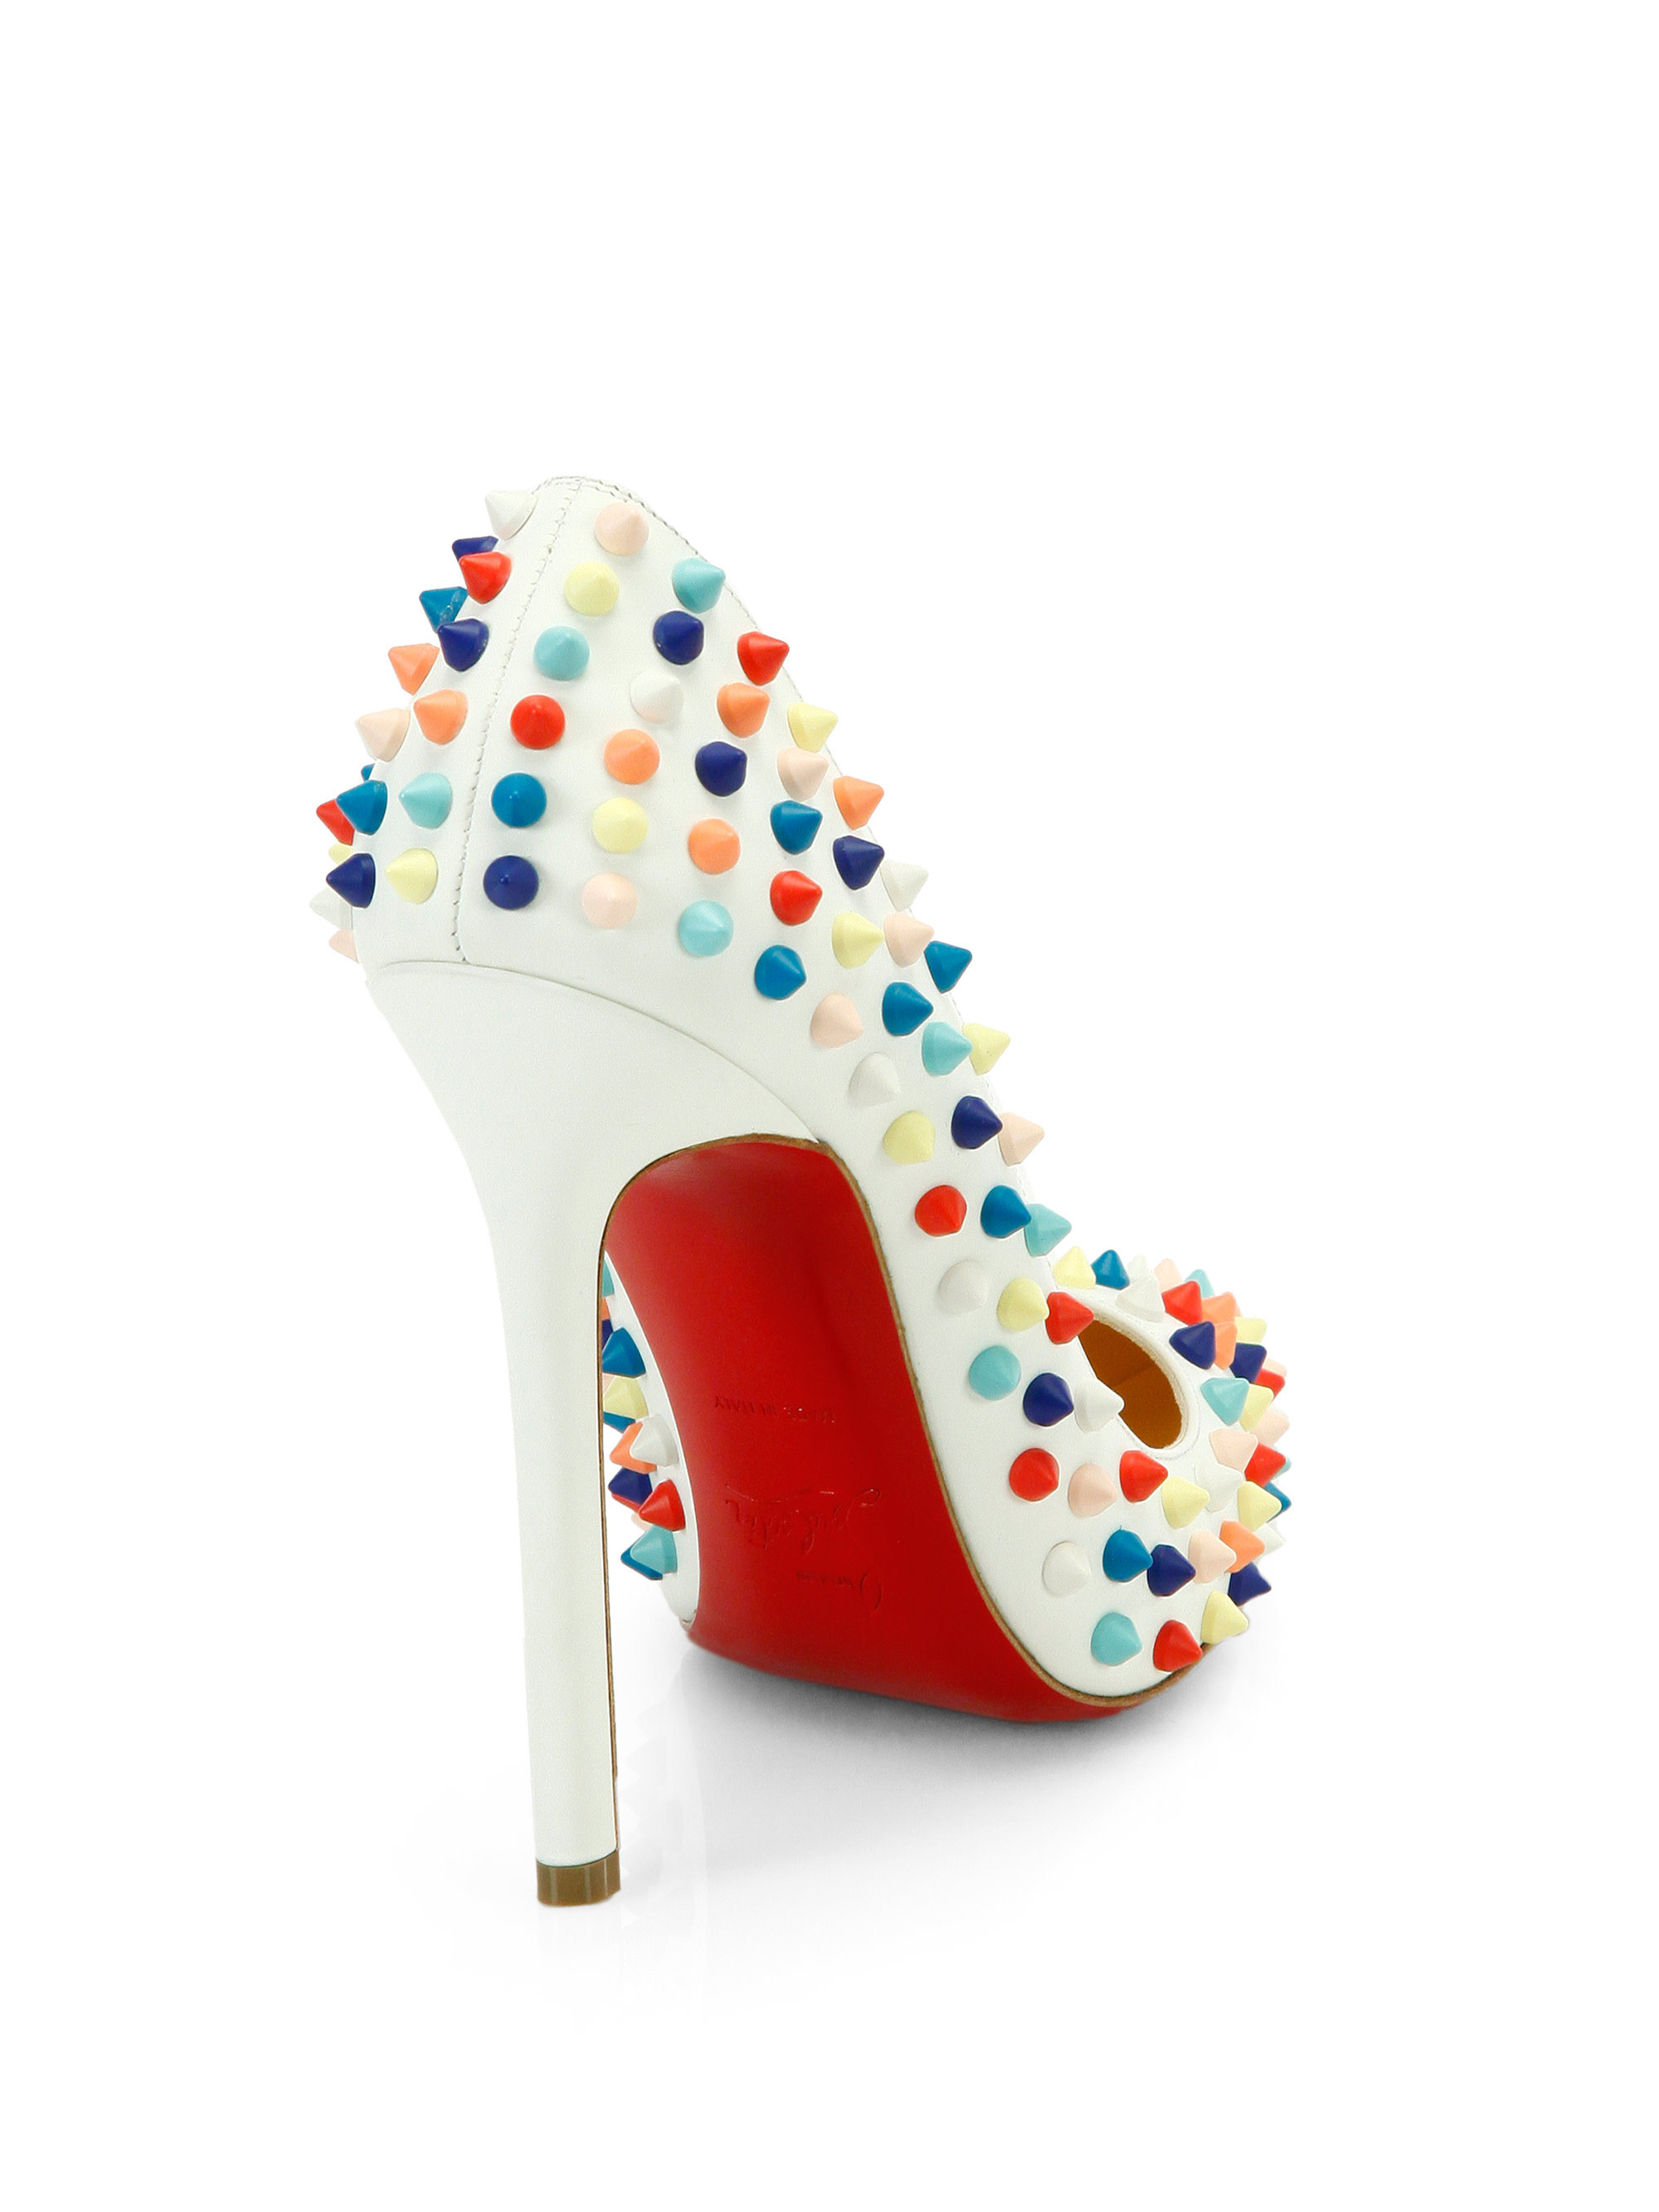 Lyst - Christian Louboutin Pigalle 120 Multicolor Spiked Leather ... fc05769d710e